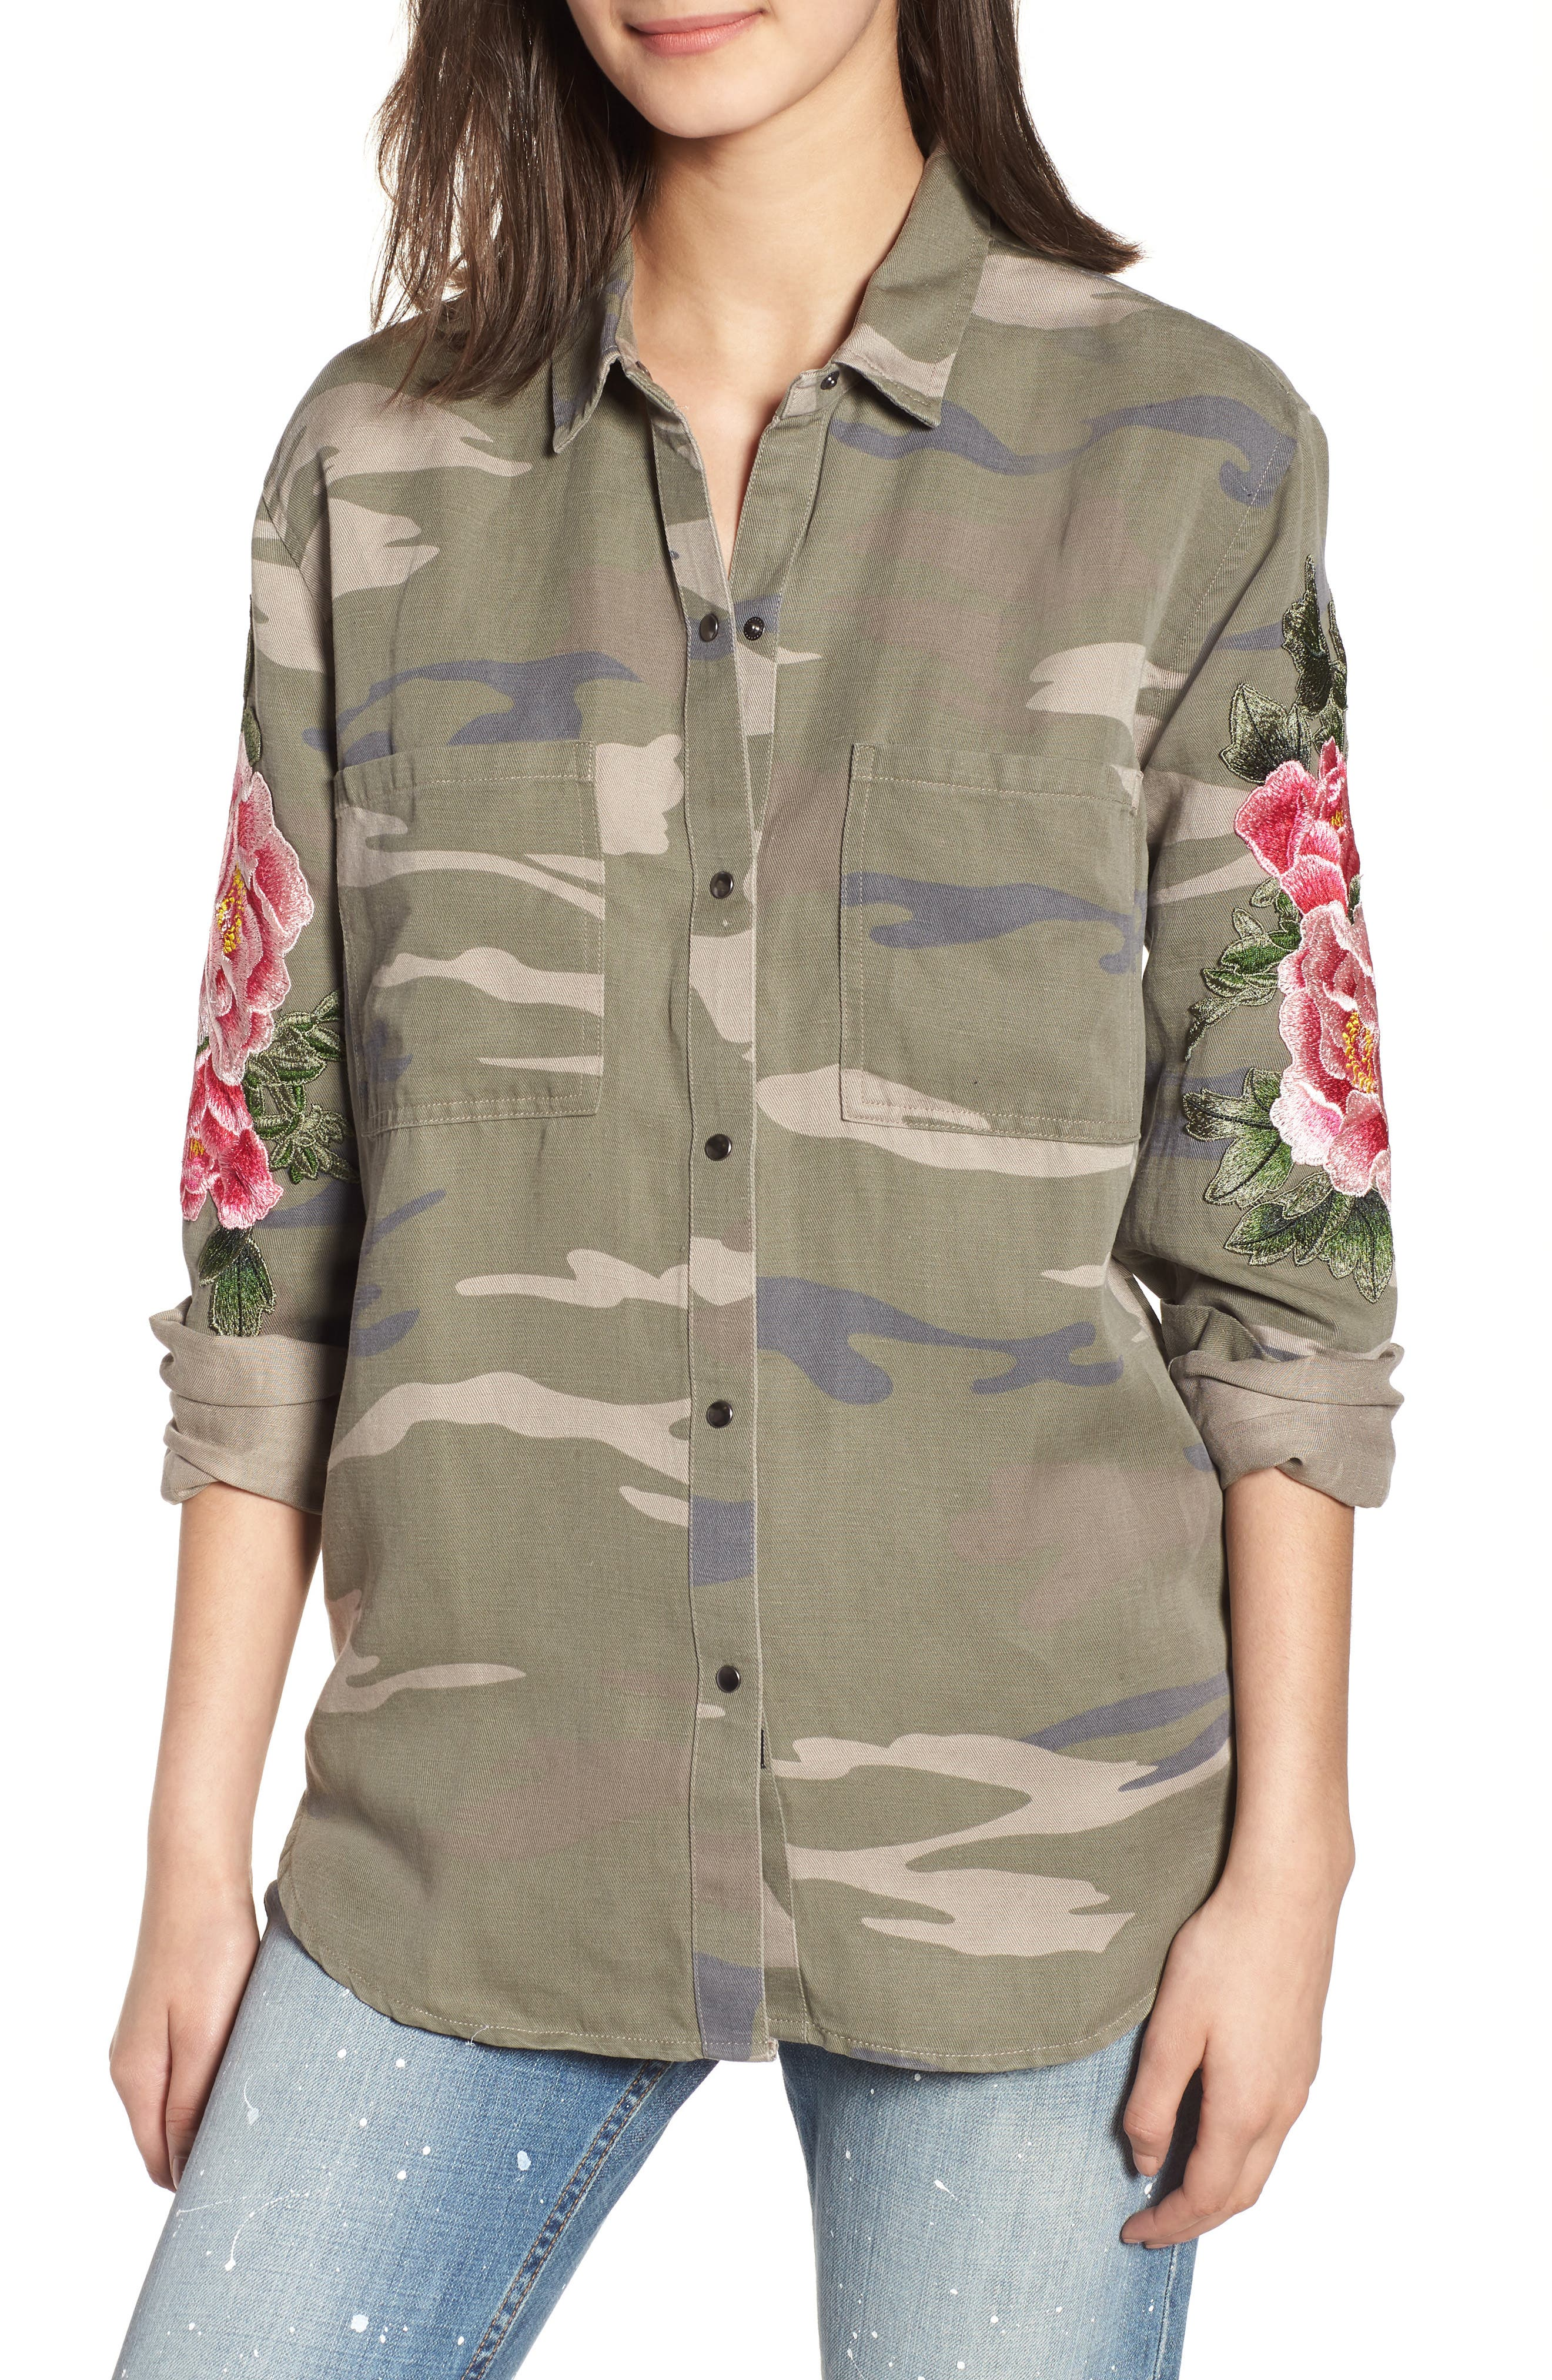 Marcel Embroidered Shirt,                             Main thumbnail 1, color,                             Sage Camo With Floral